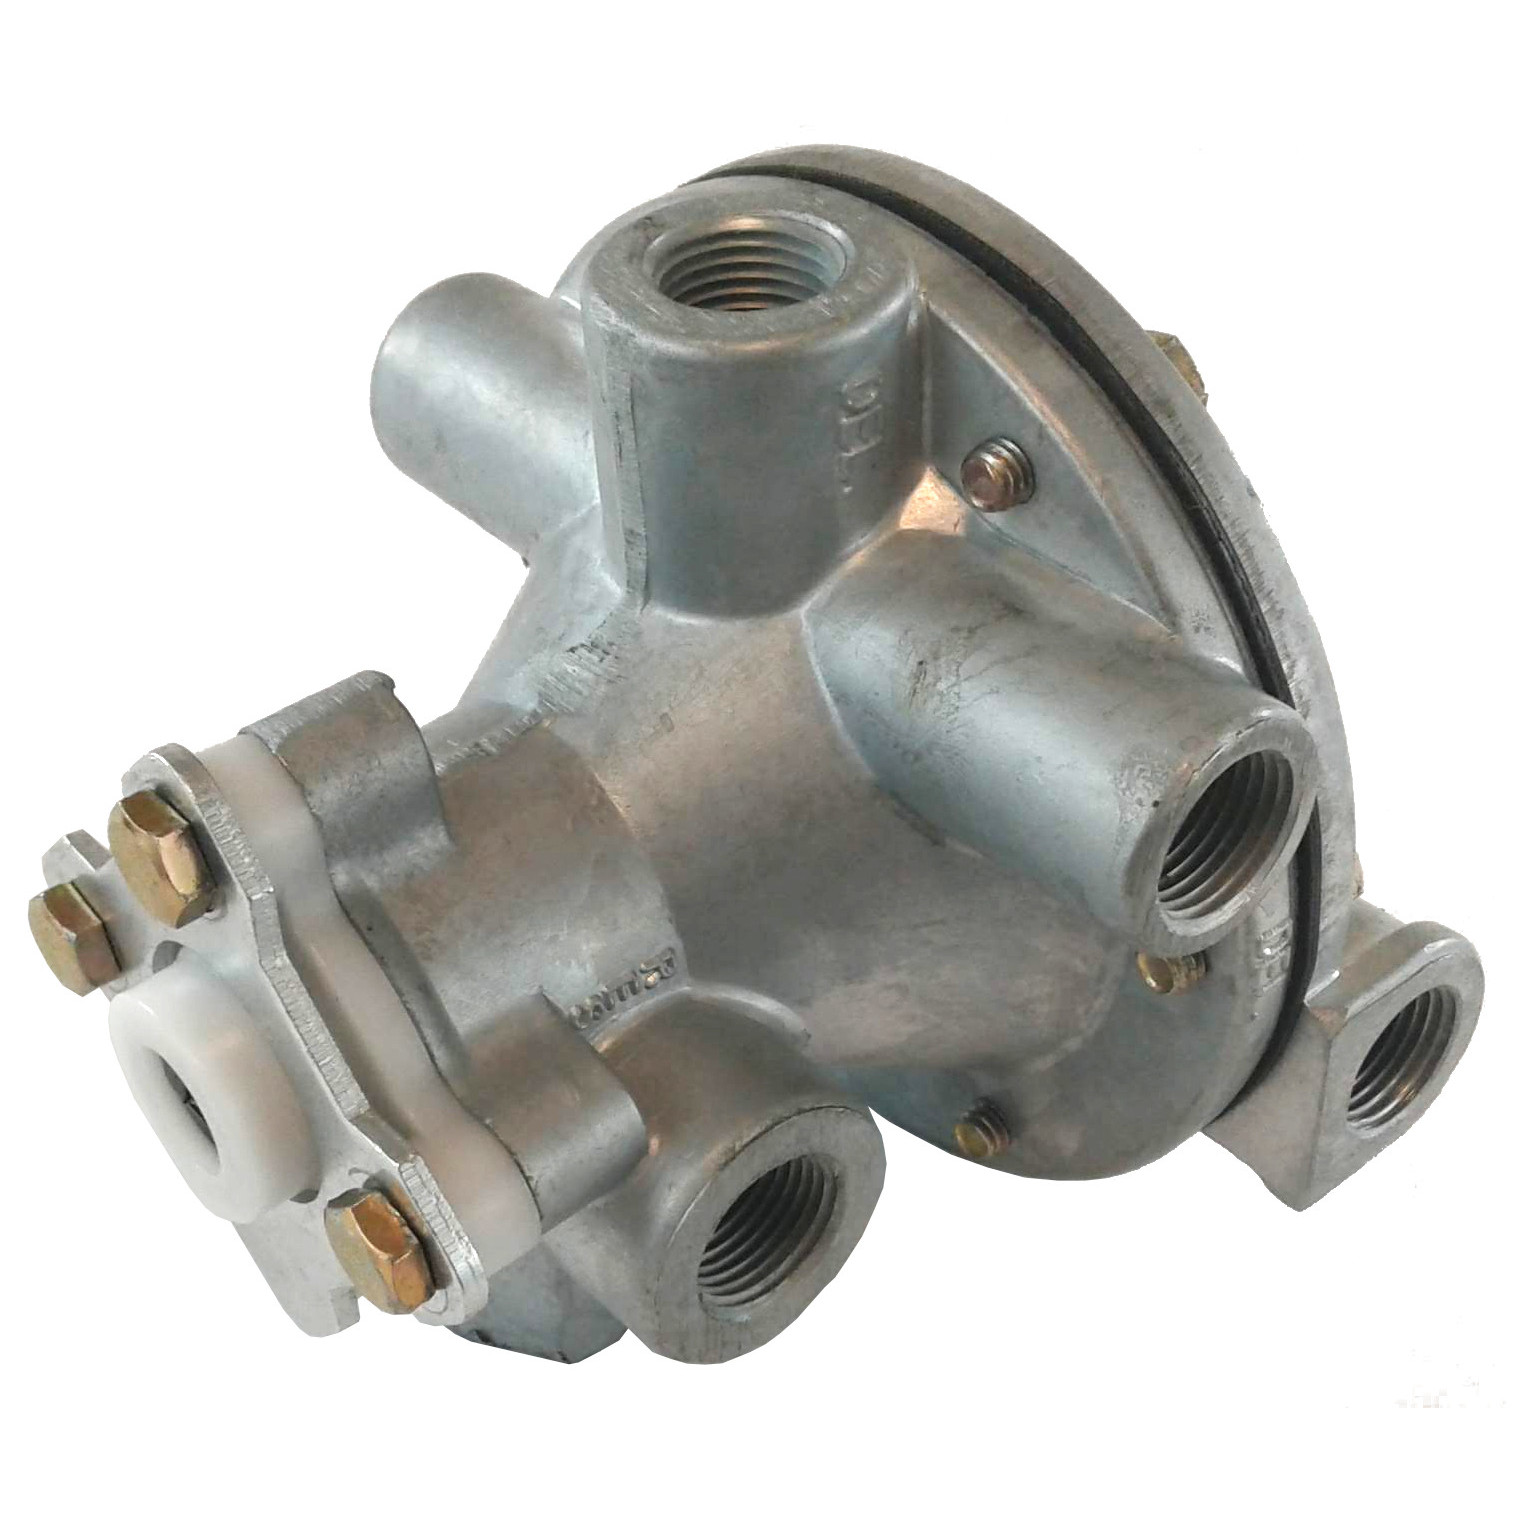 2 Delivery Port Tractor Trailer Service Relay Brake Valve - 3/8 Inch - 1/2  Inch NPT - Nipple Mount